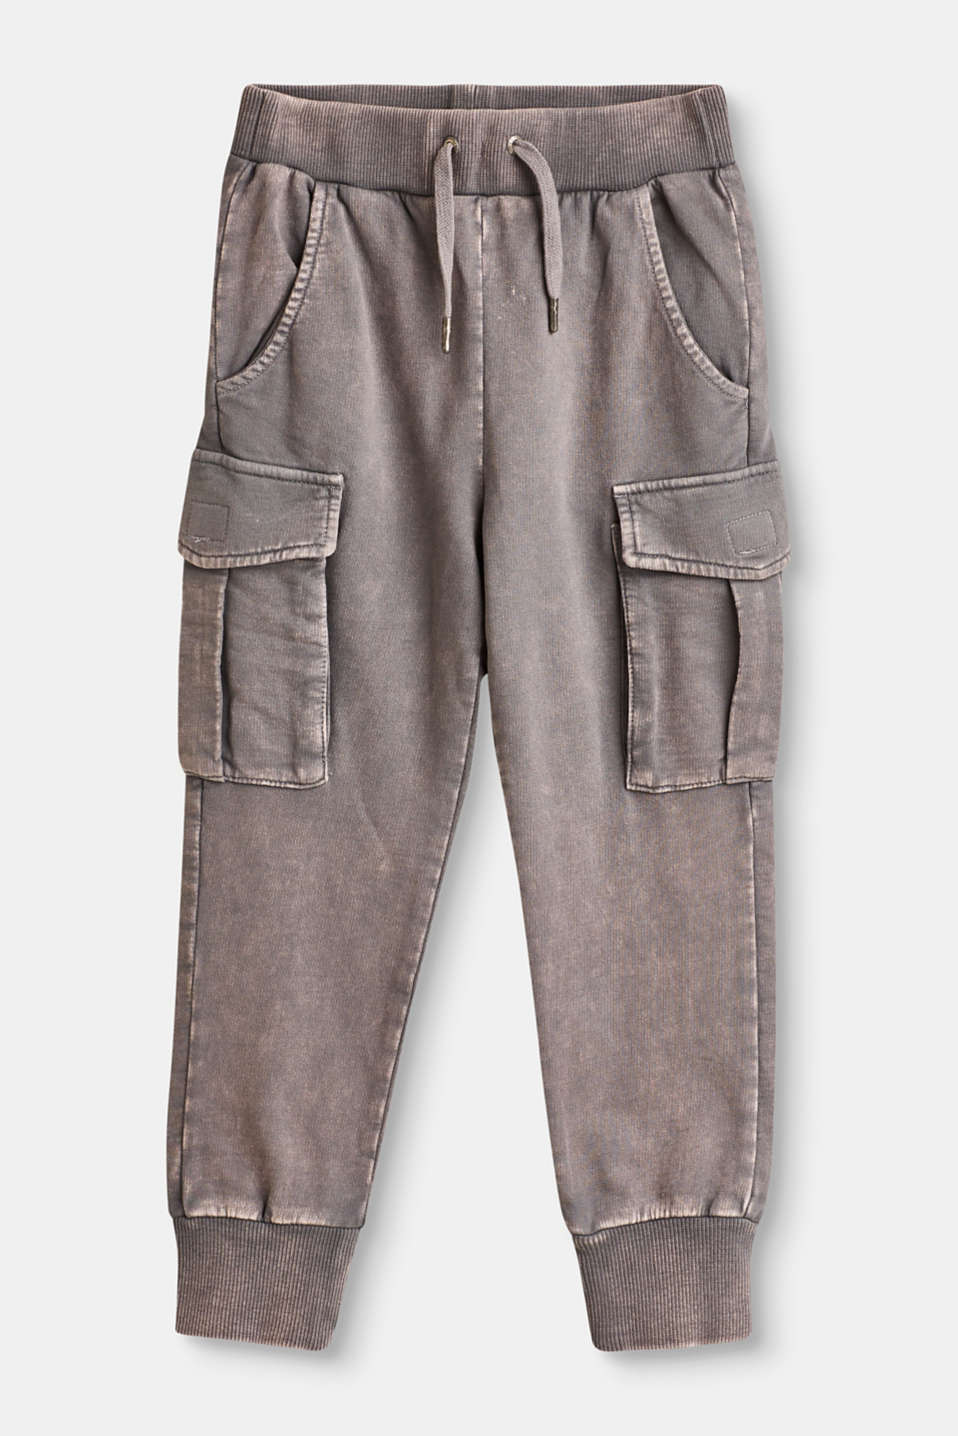 Esprit - Cargo style tracksuit trousers in 100% cotton